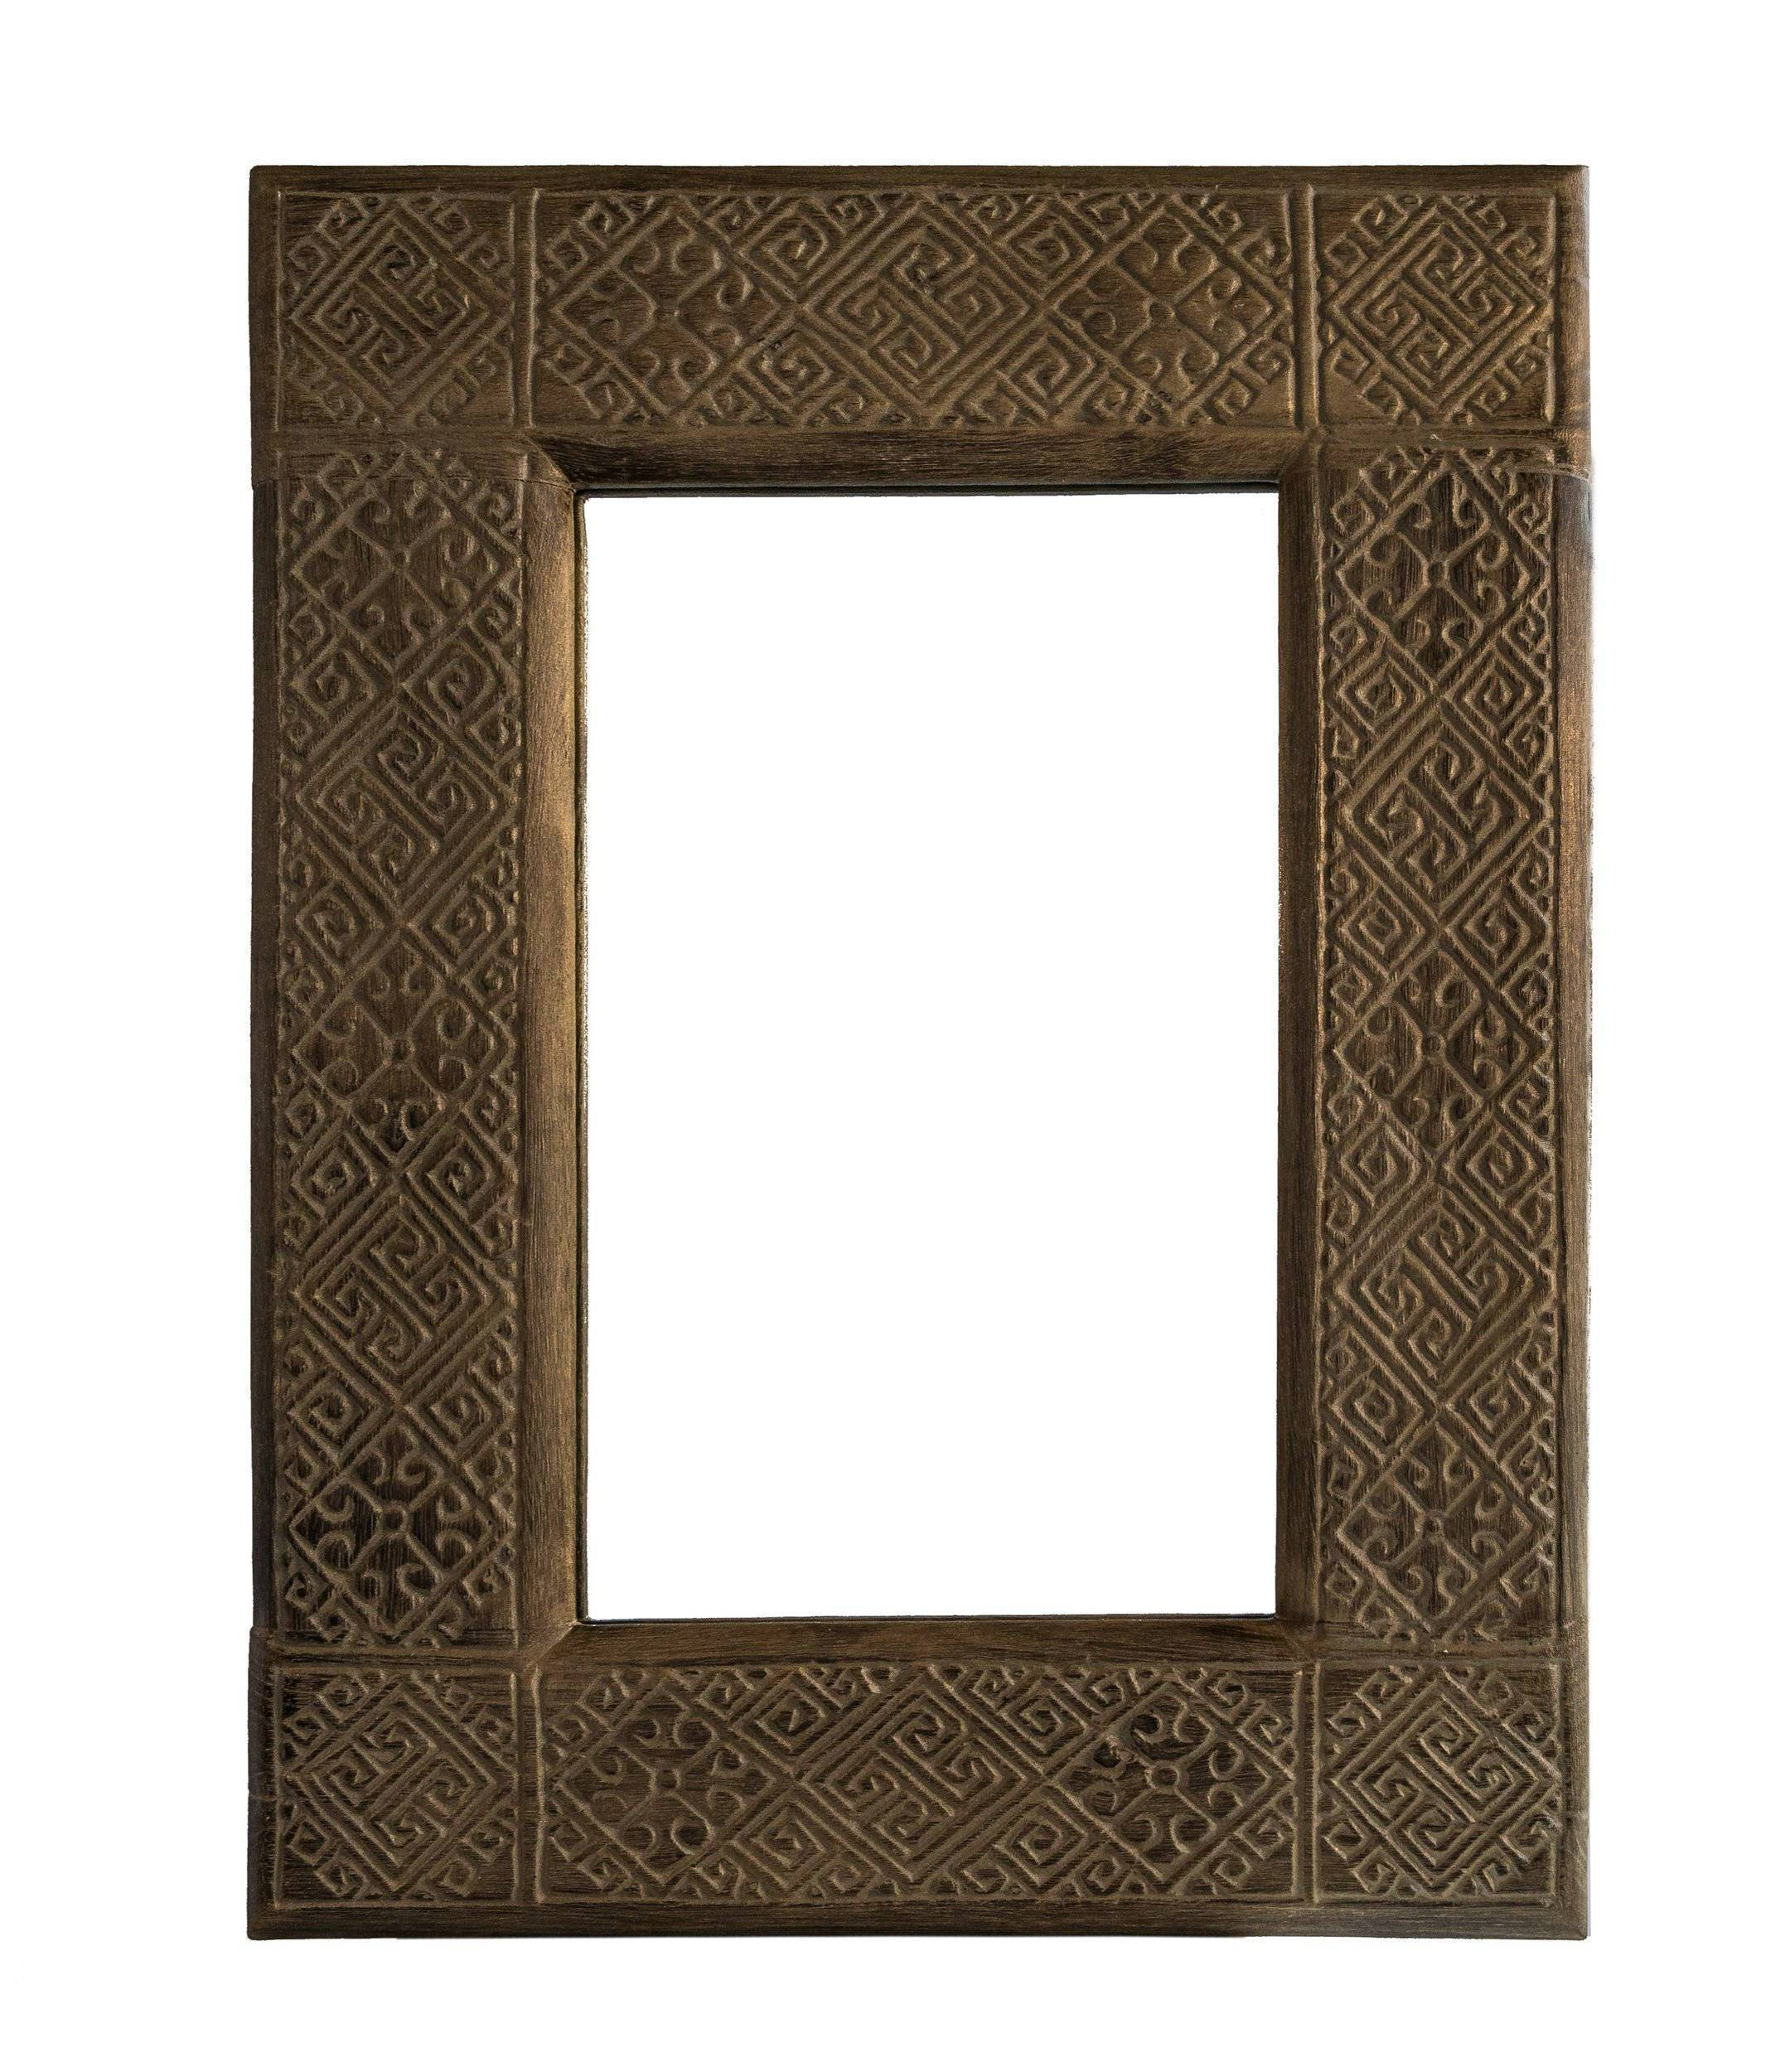 ARKA Living Small wooden carving mirror